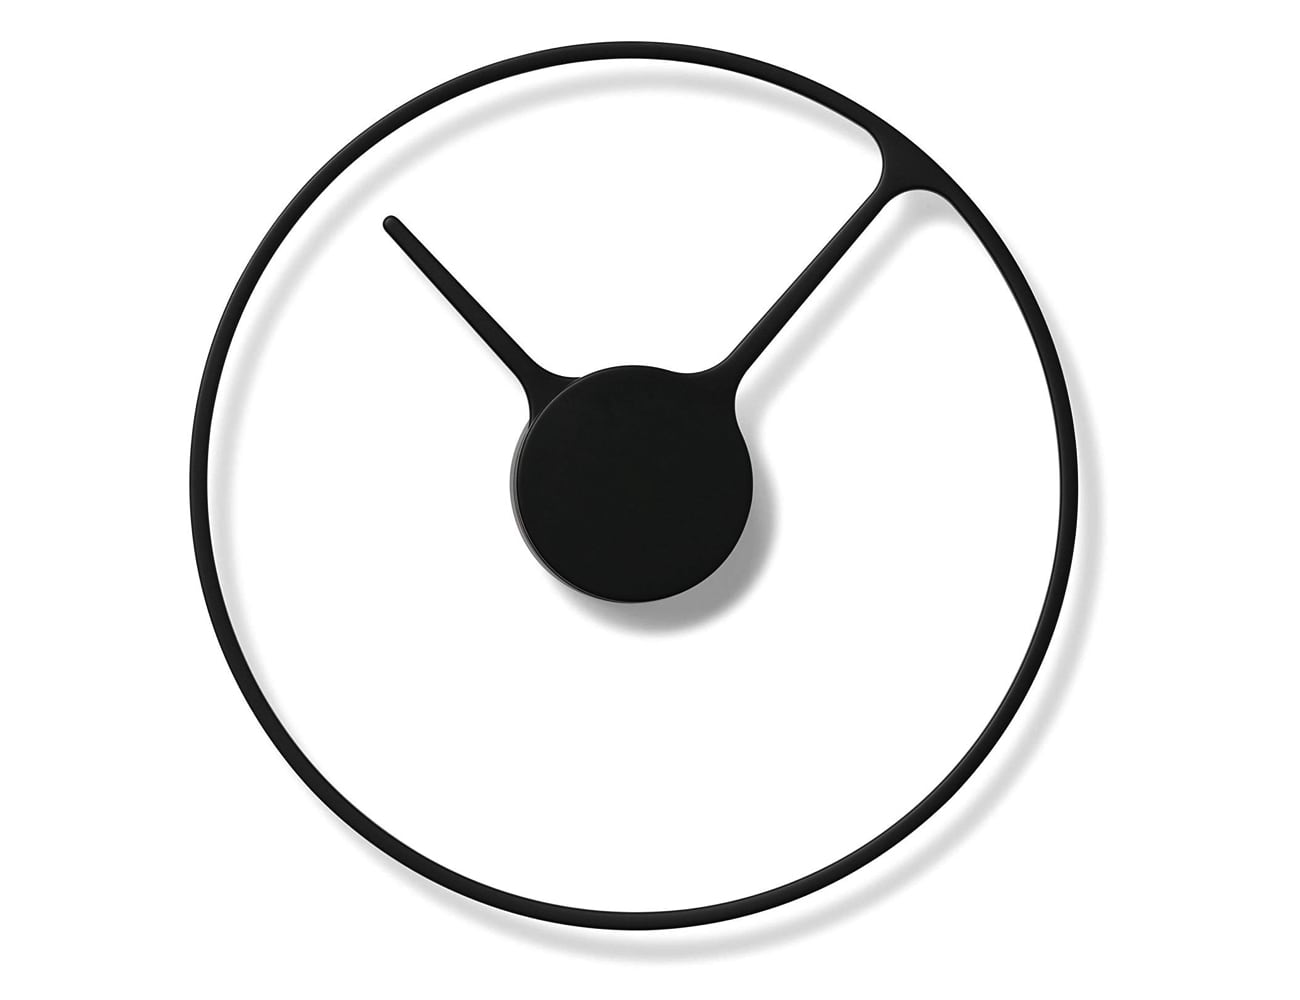 Stelton Time Floating Wall Clock